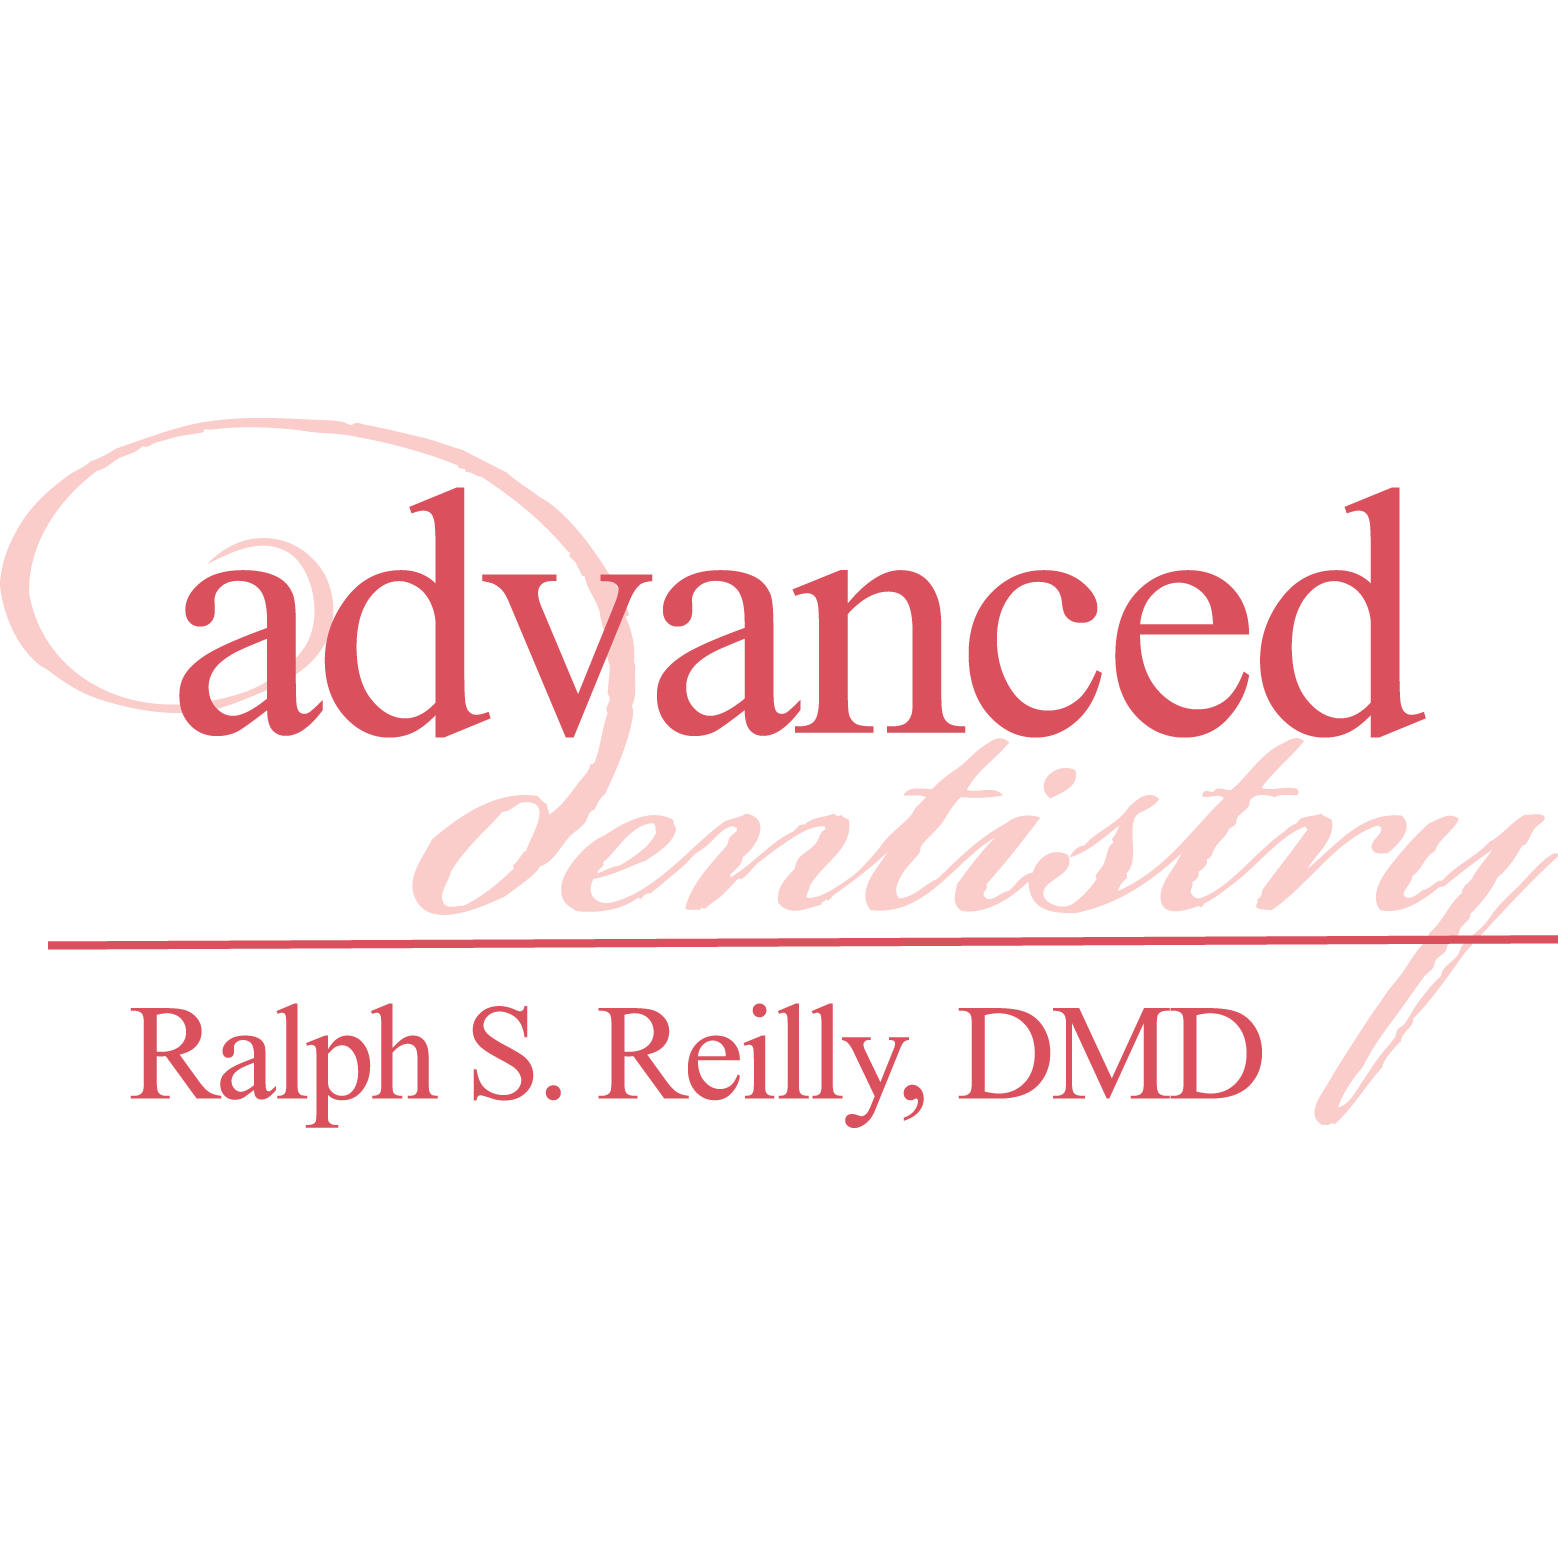 Advanced Dentistry - Ralph S. Reilly, DMD